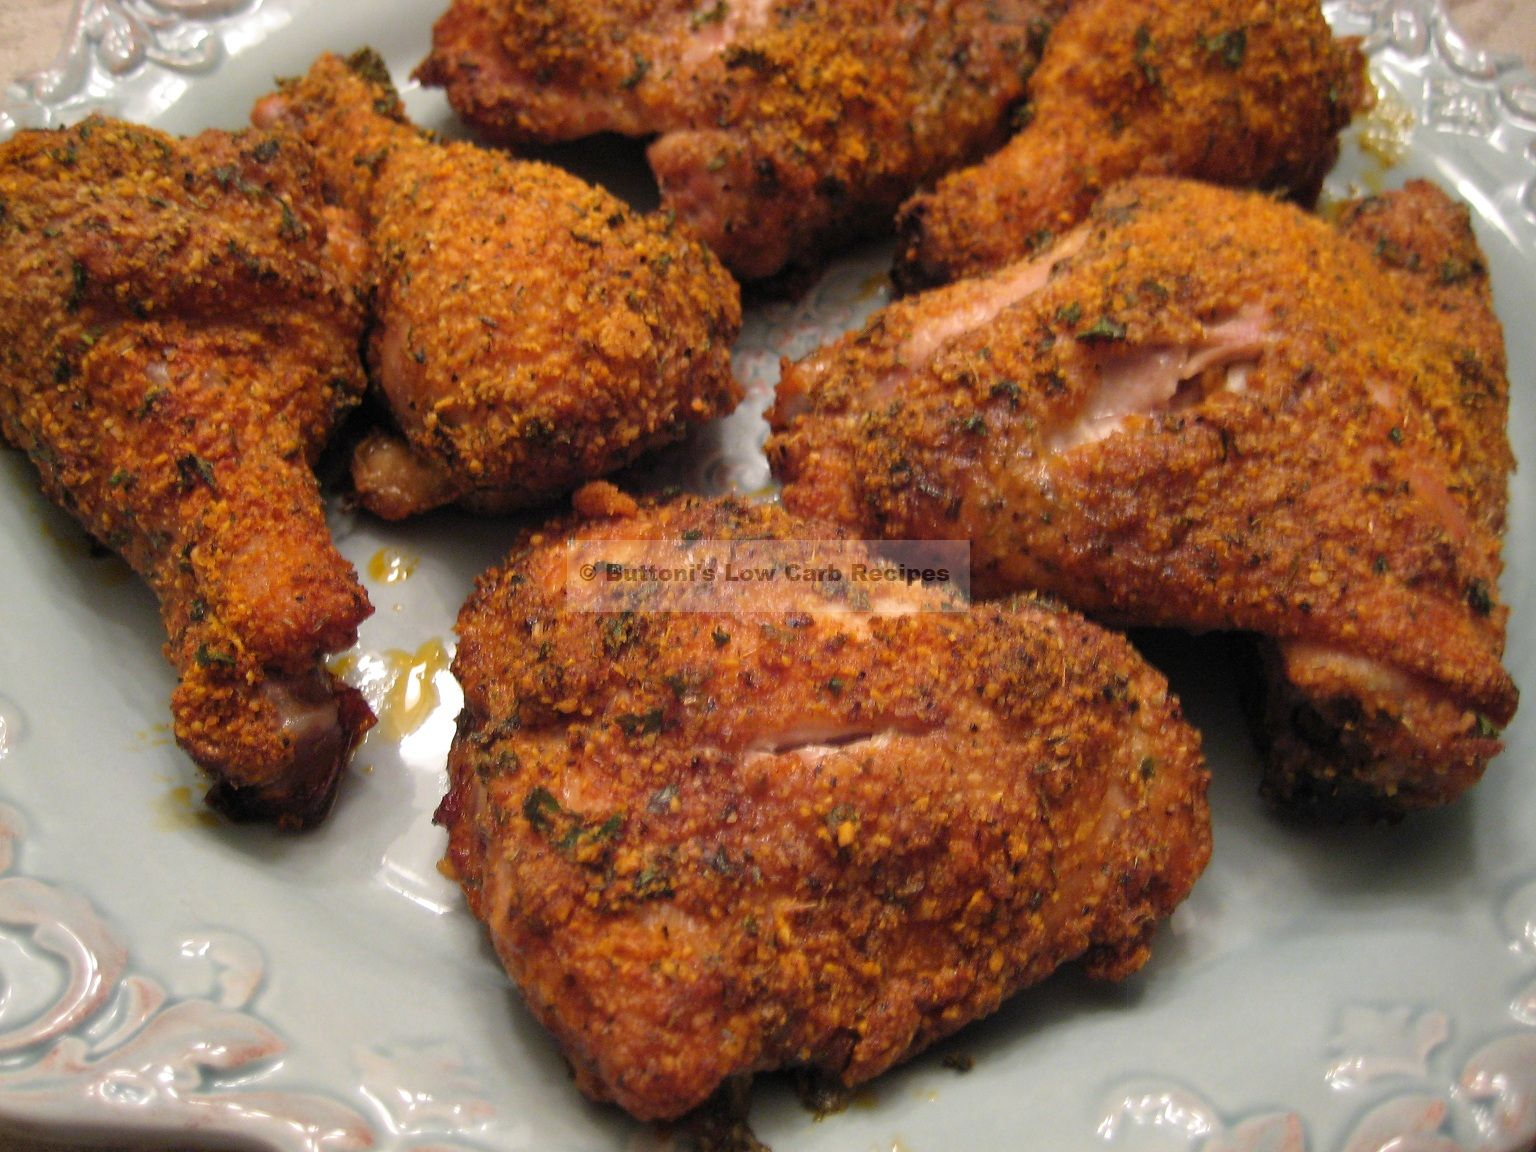 Oven-Fried Chicken | Low carb chicken recipes, Oven fried ... - photo#33